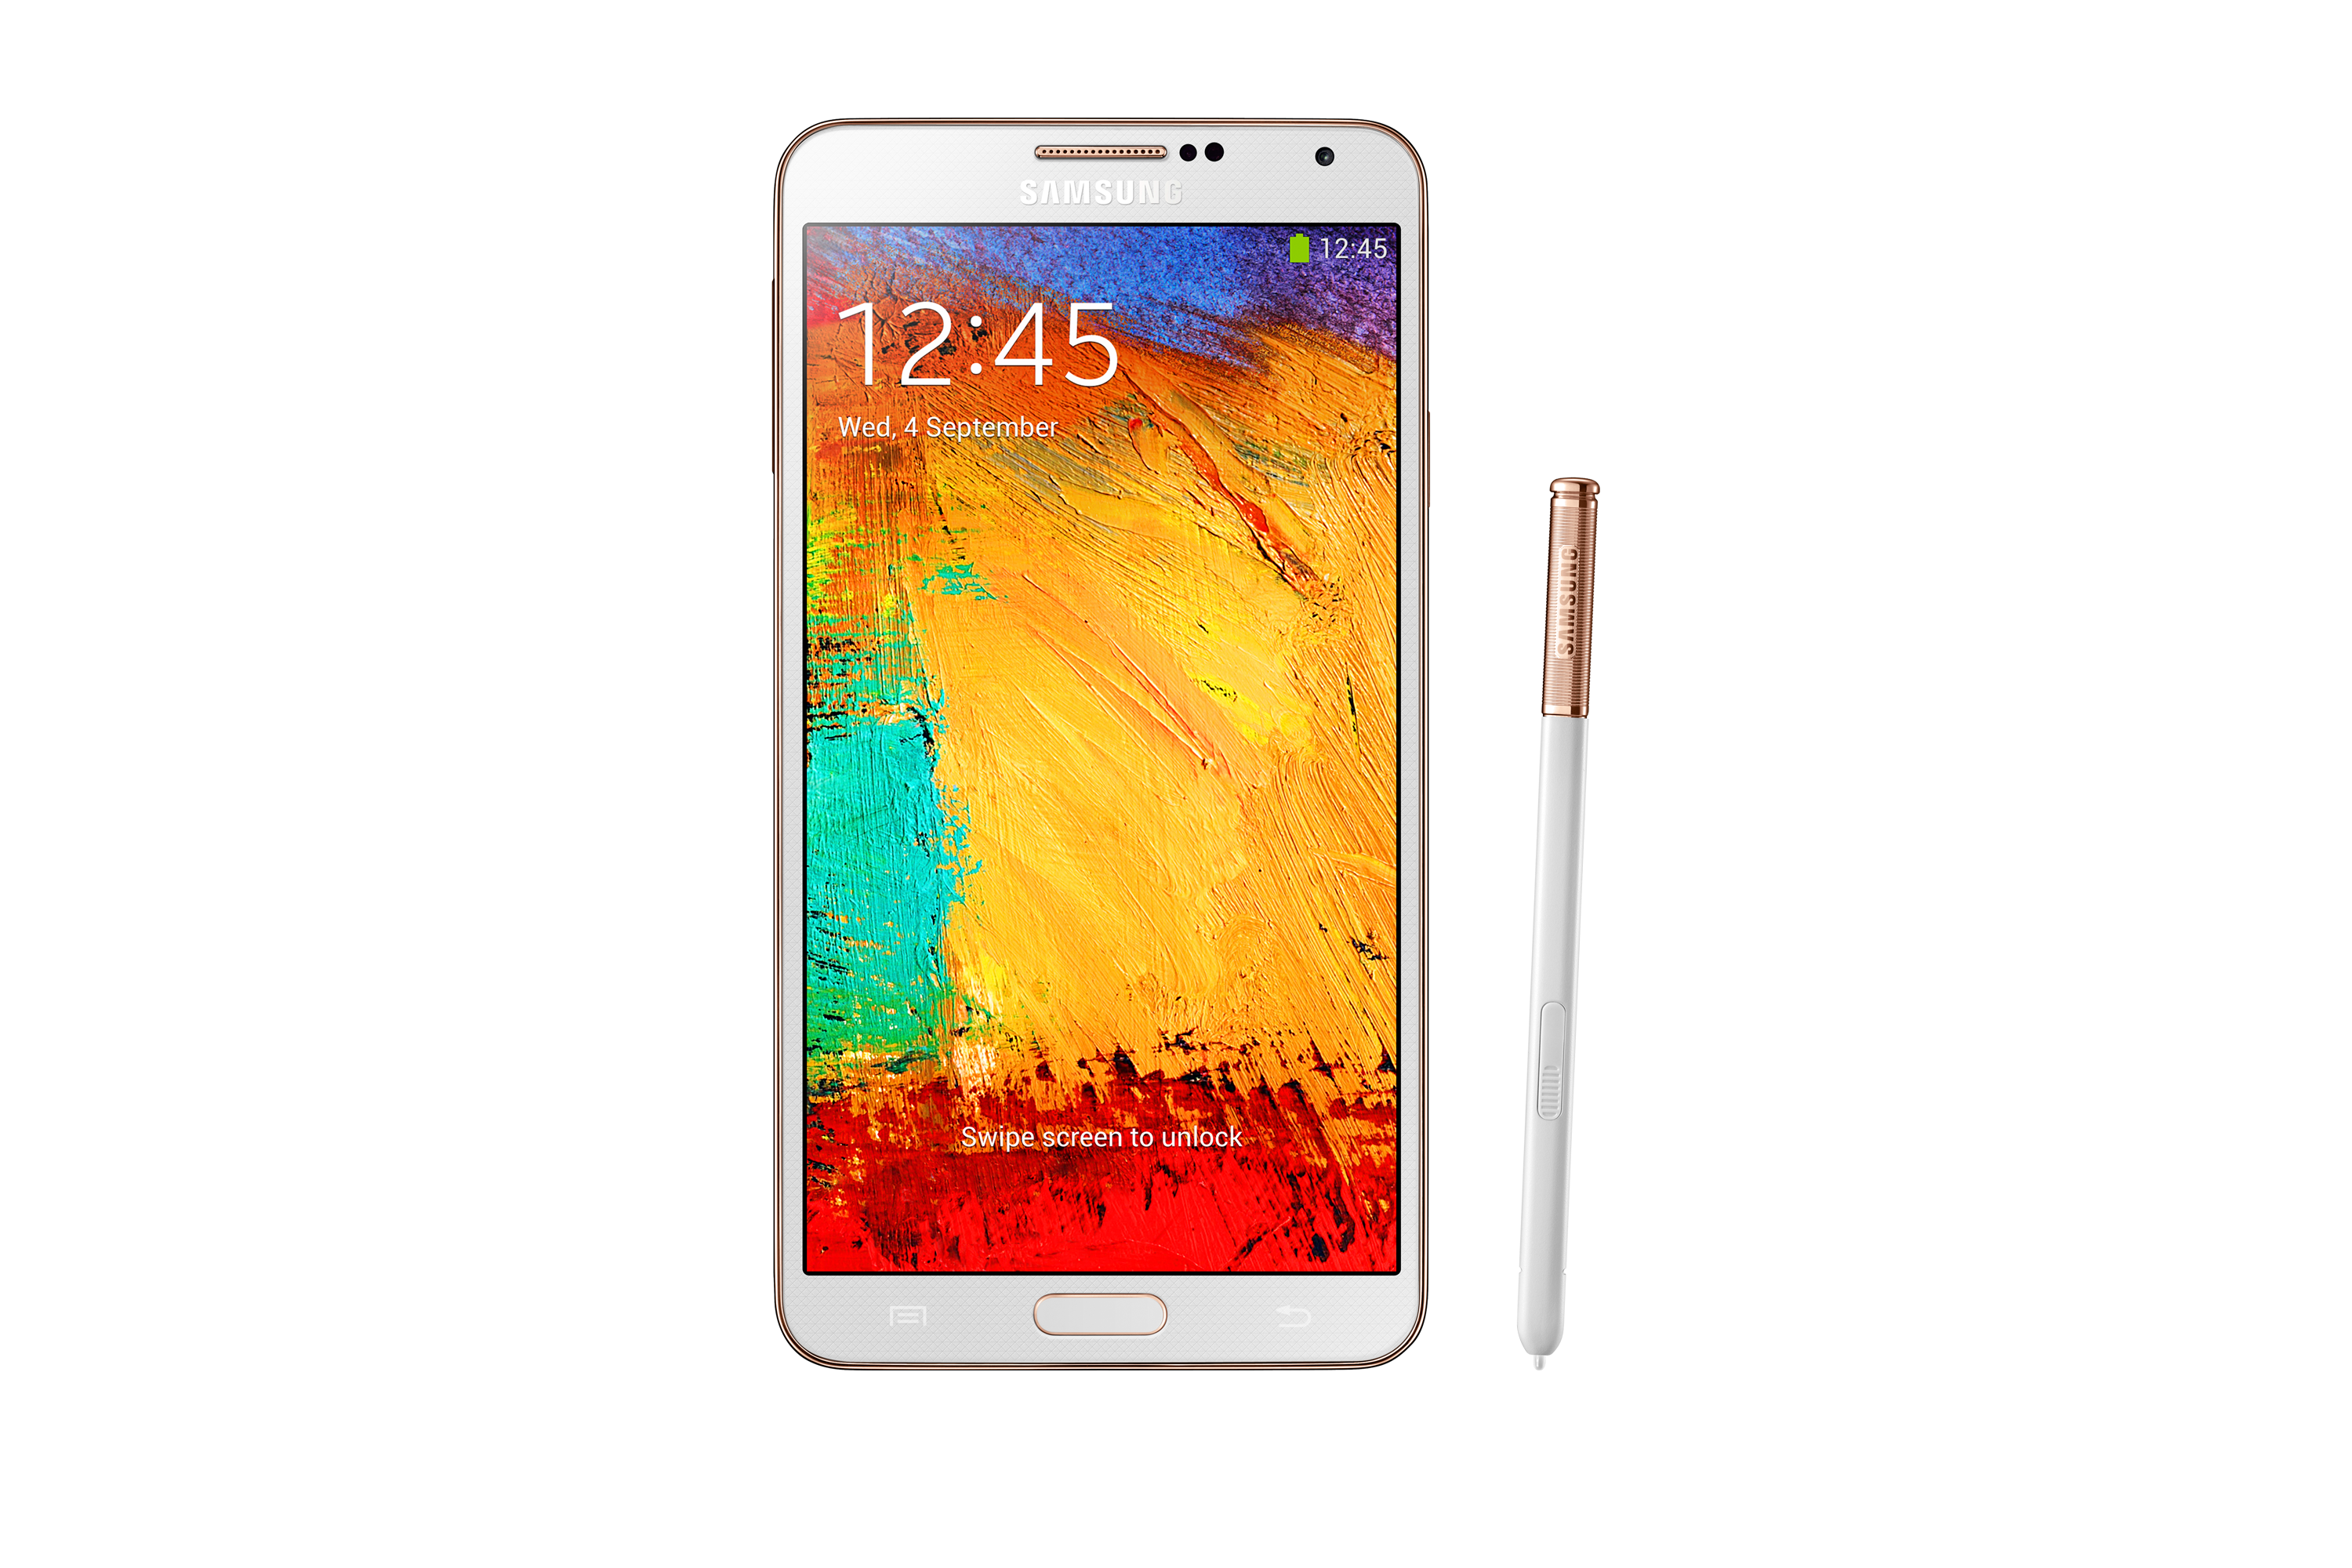 SM-N9005 Galaxy Note 3 (White)